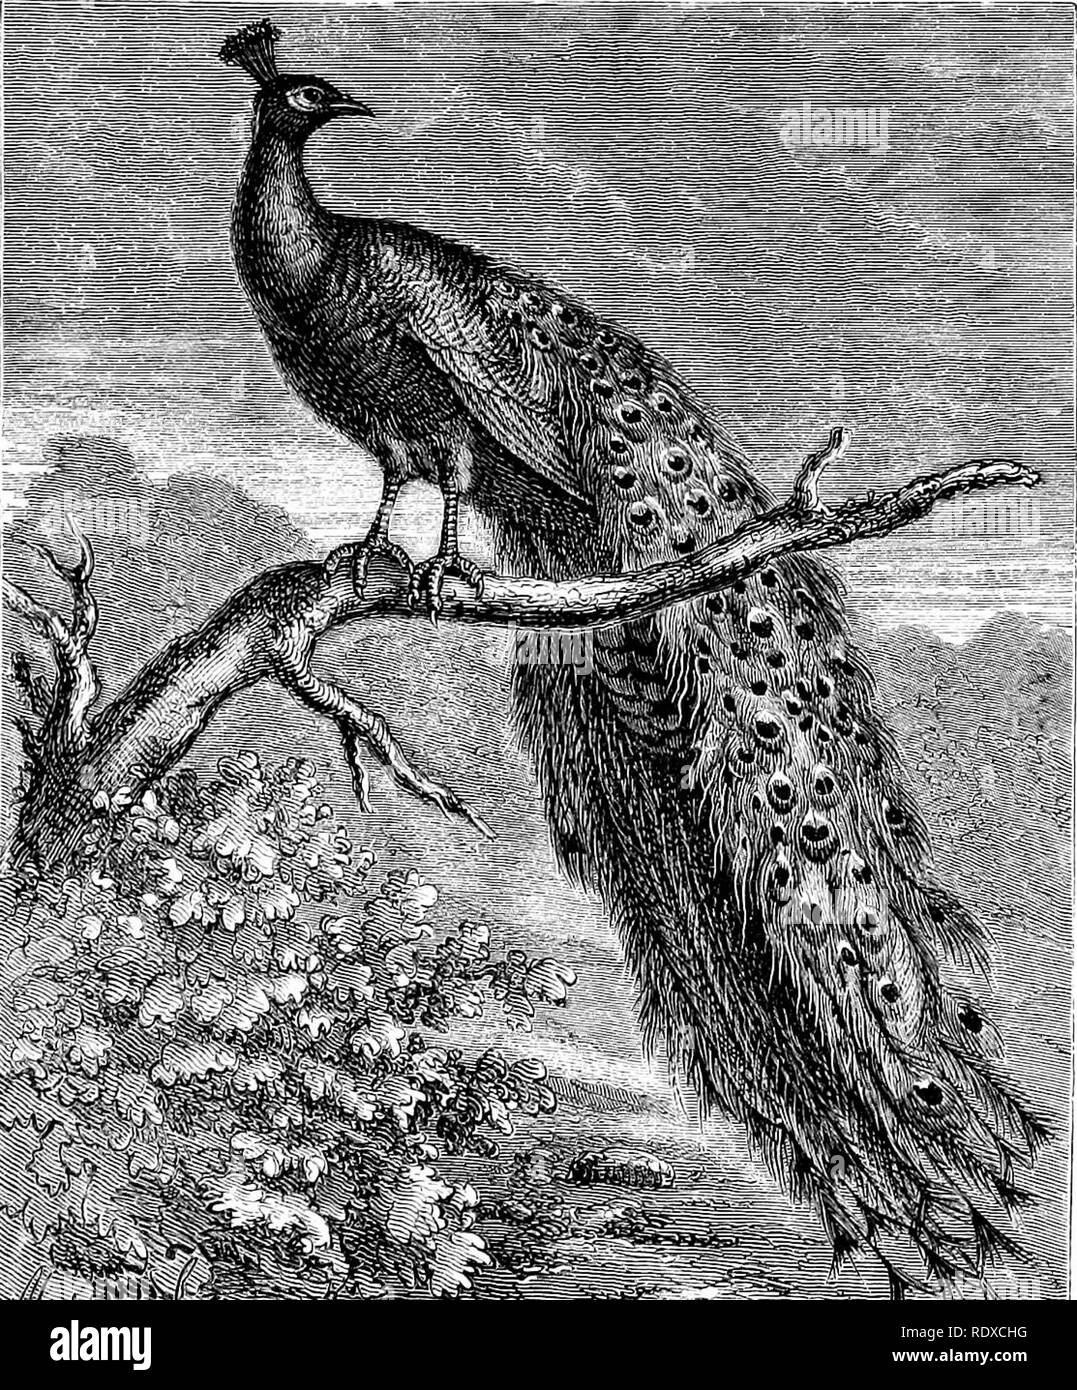 """. Reptiles and birds : a popular account of their various orders : with a description of the habits and economy of the most interesting . Birds; Reptiles. PEACOCKS. 443 and before him rejoices to display all the riches of his wonderful tail. Complete master in the art of pleasing, he knows how to manage the transitions of light and shade so as to present him- self to the greatest advantage; and when he has been gazed at. 'â »v"""" J 11 ' .*Si(Ie -'»>>1». f ,*^. â Fig. 17S.âDuuicsLic PtacuLk (i-iiru ci istutm, Woud), sufEciently, by reiterated struts he marks his contentment. At the - Stock Image"""